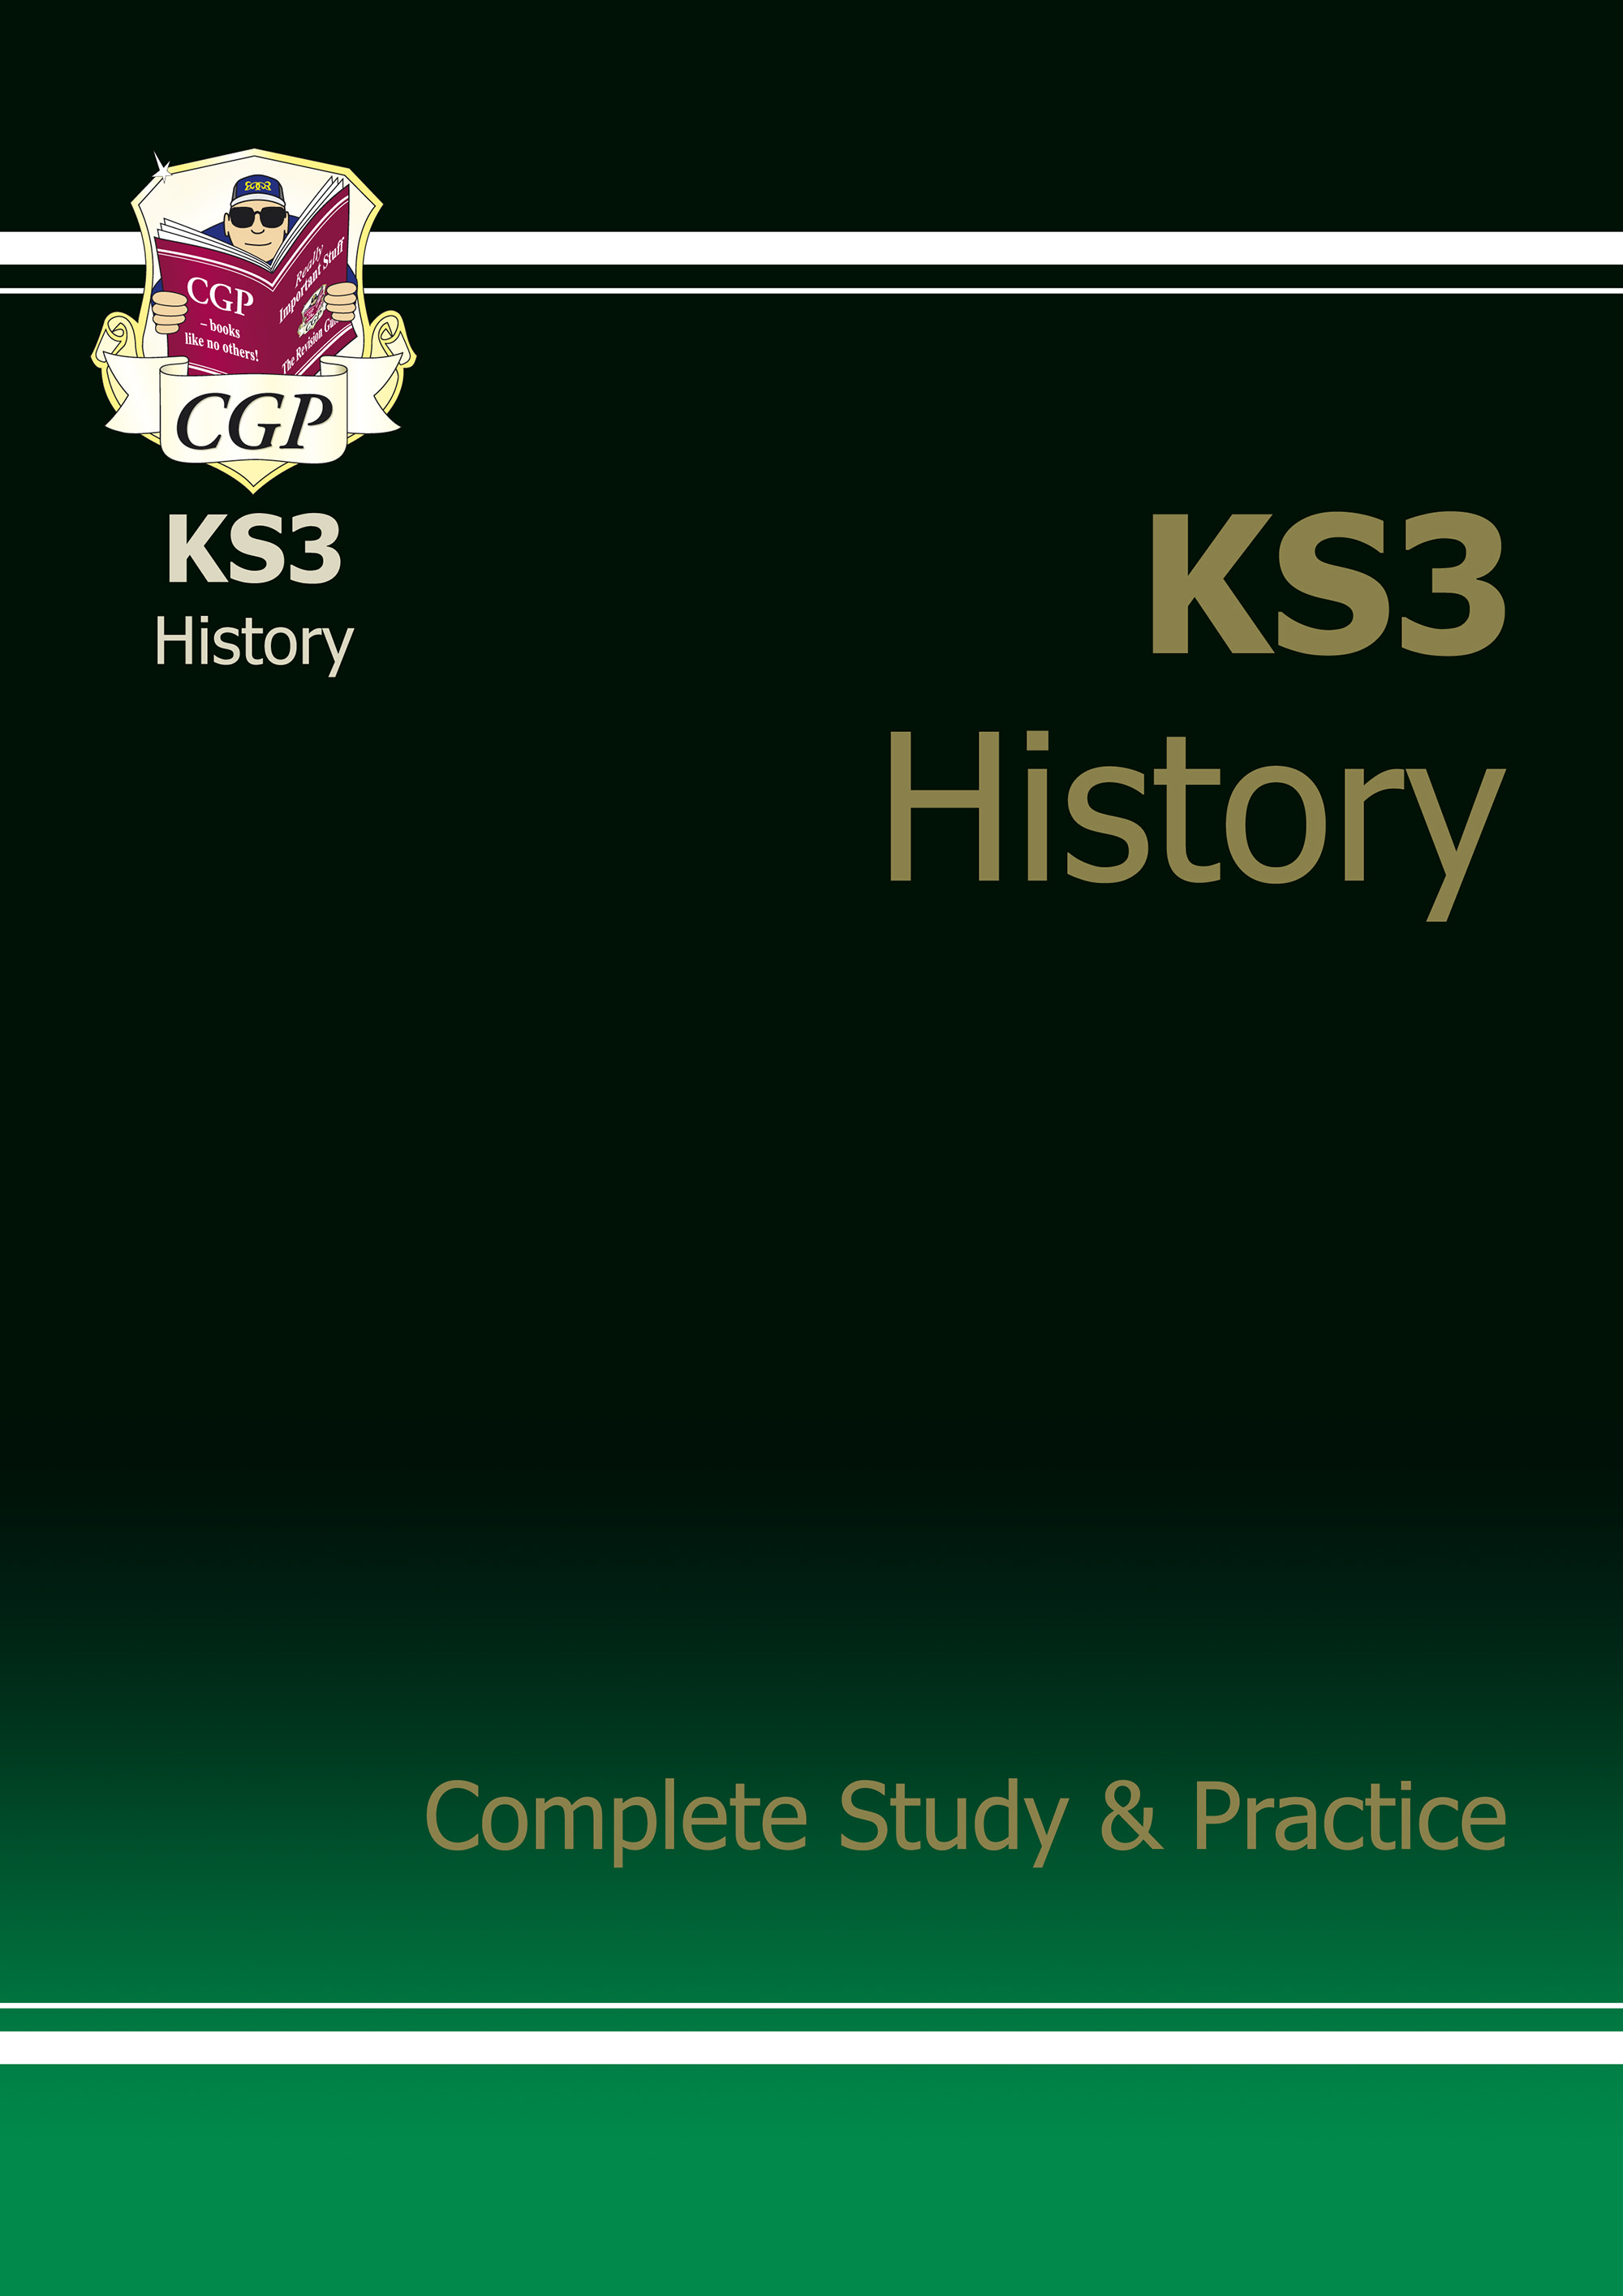 HHS33 - KS3 History Complete Study & Practice